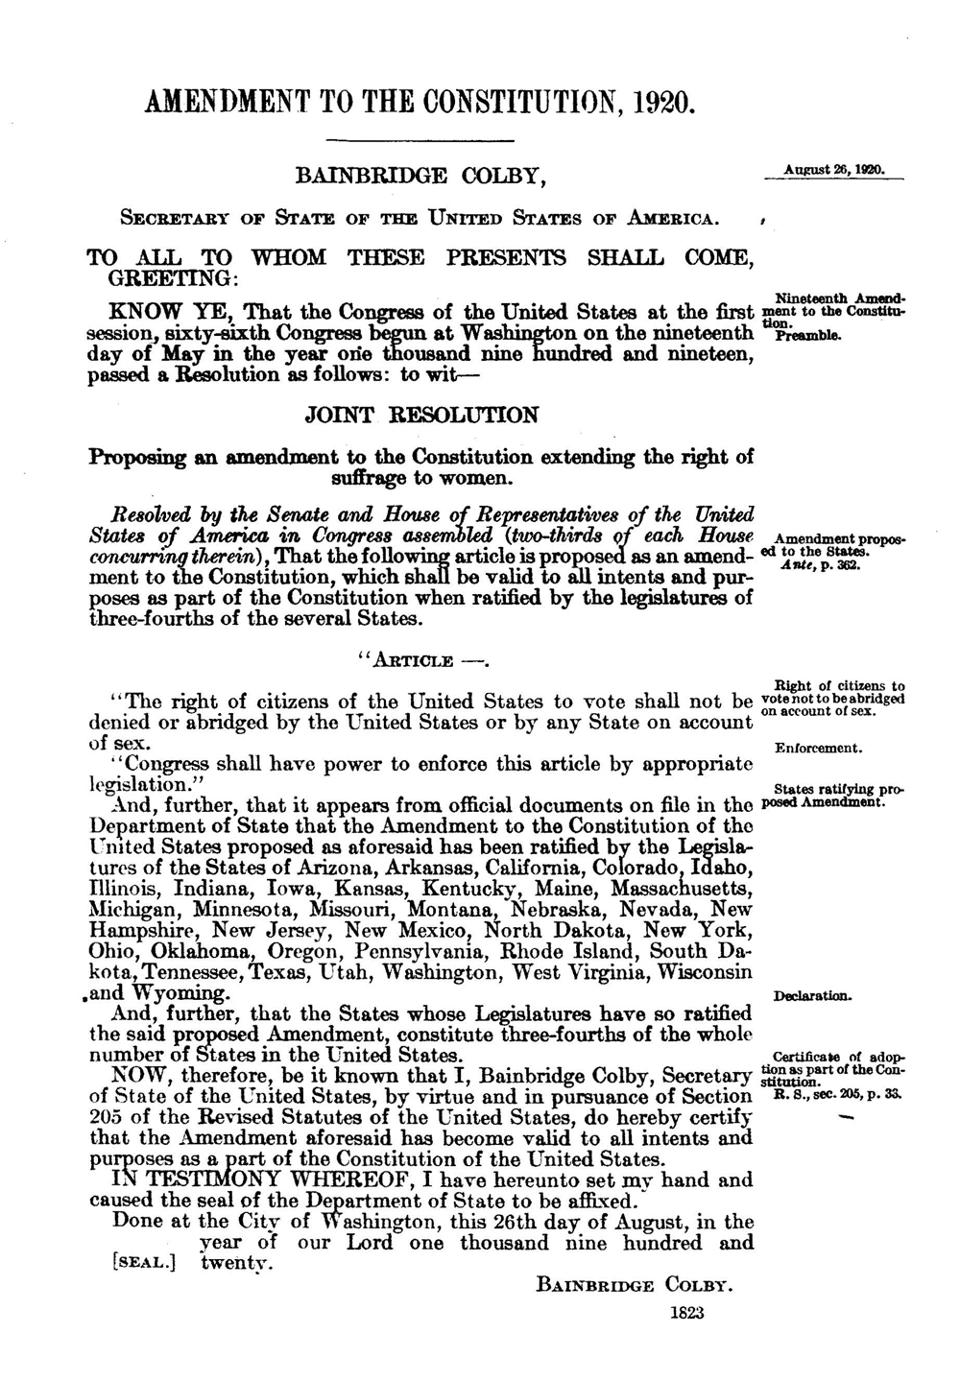 19th Amendment to the Constitution, certified 1920